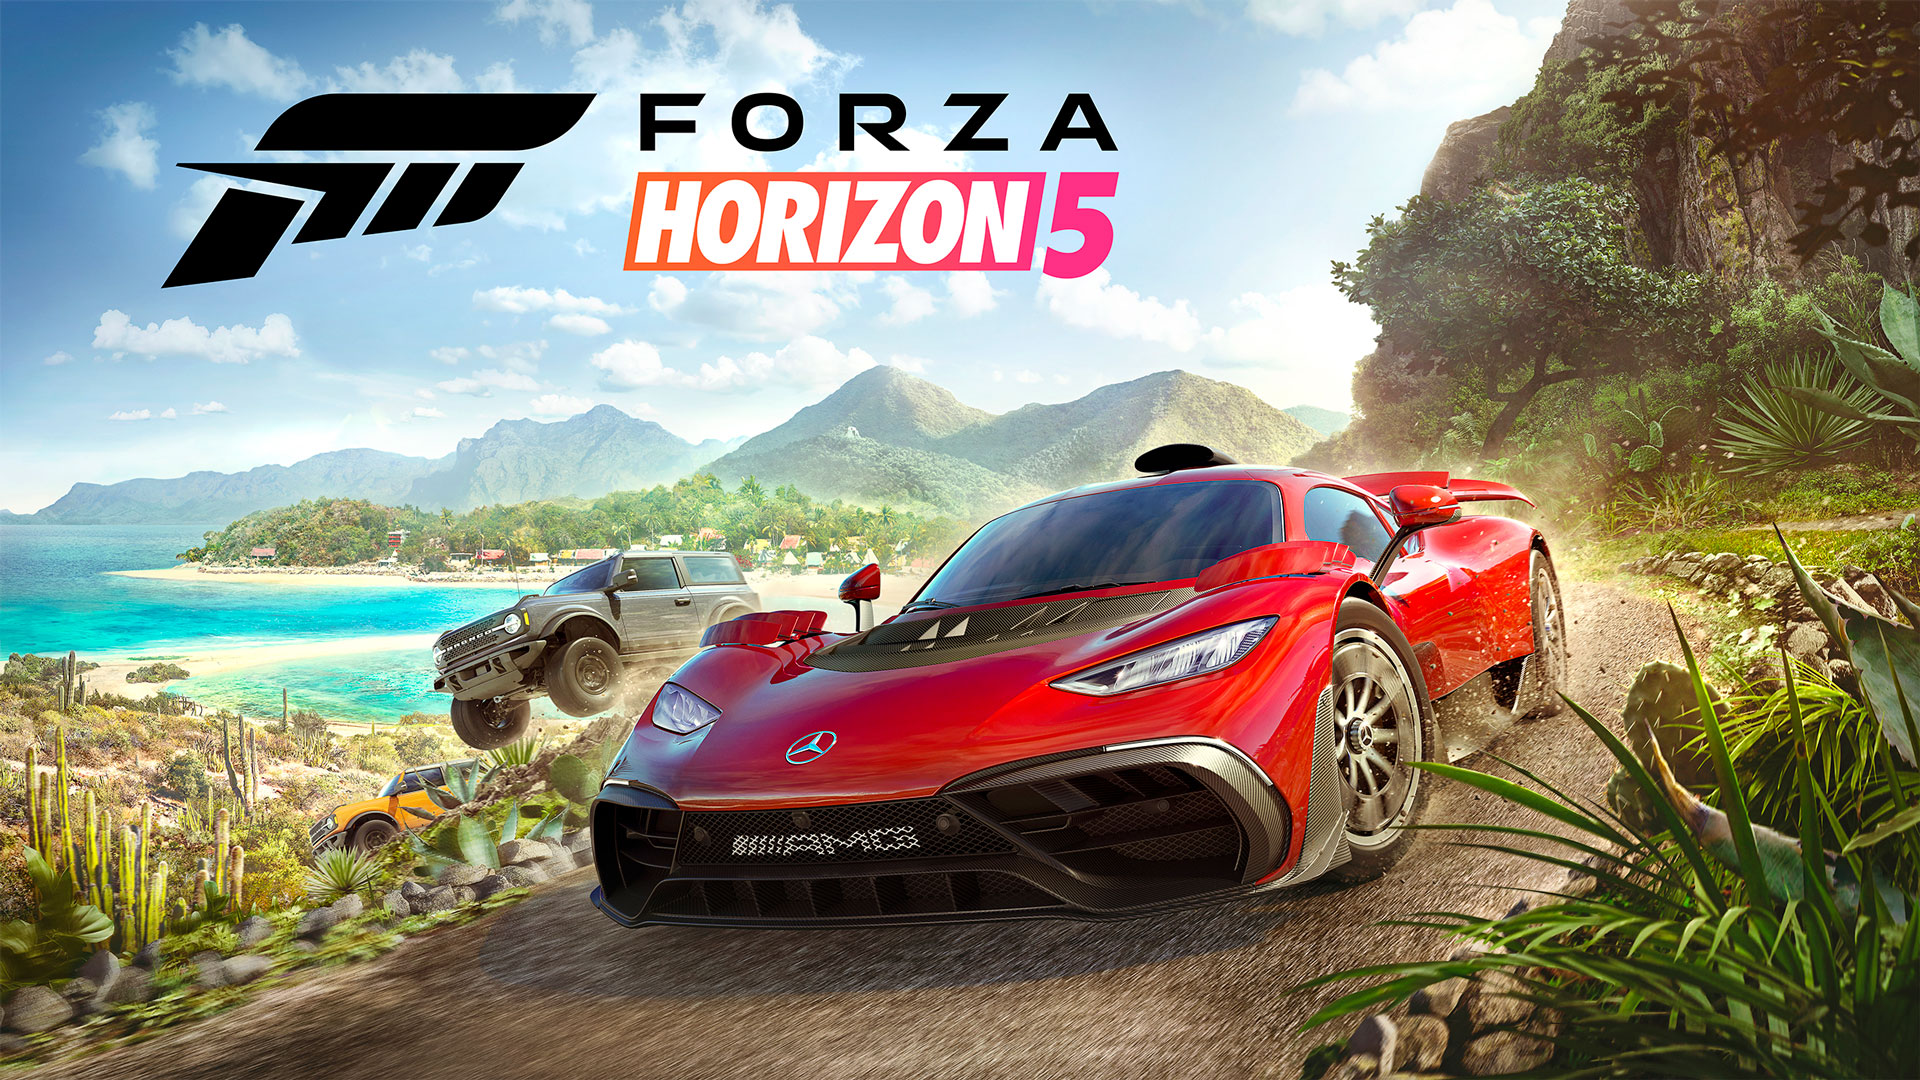 Forza gamescom Inline4 Forza Horizon 5 Unveils New Gameplay and Cover Cars at gamescom 2021